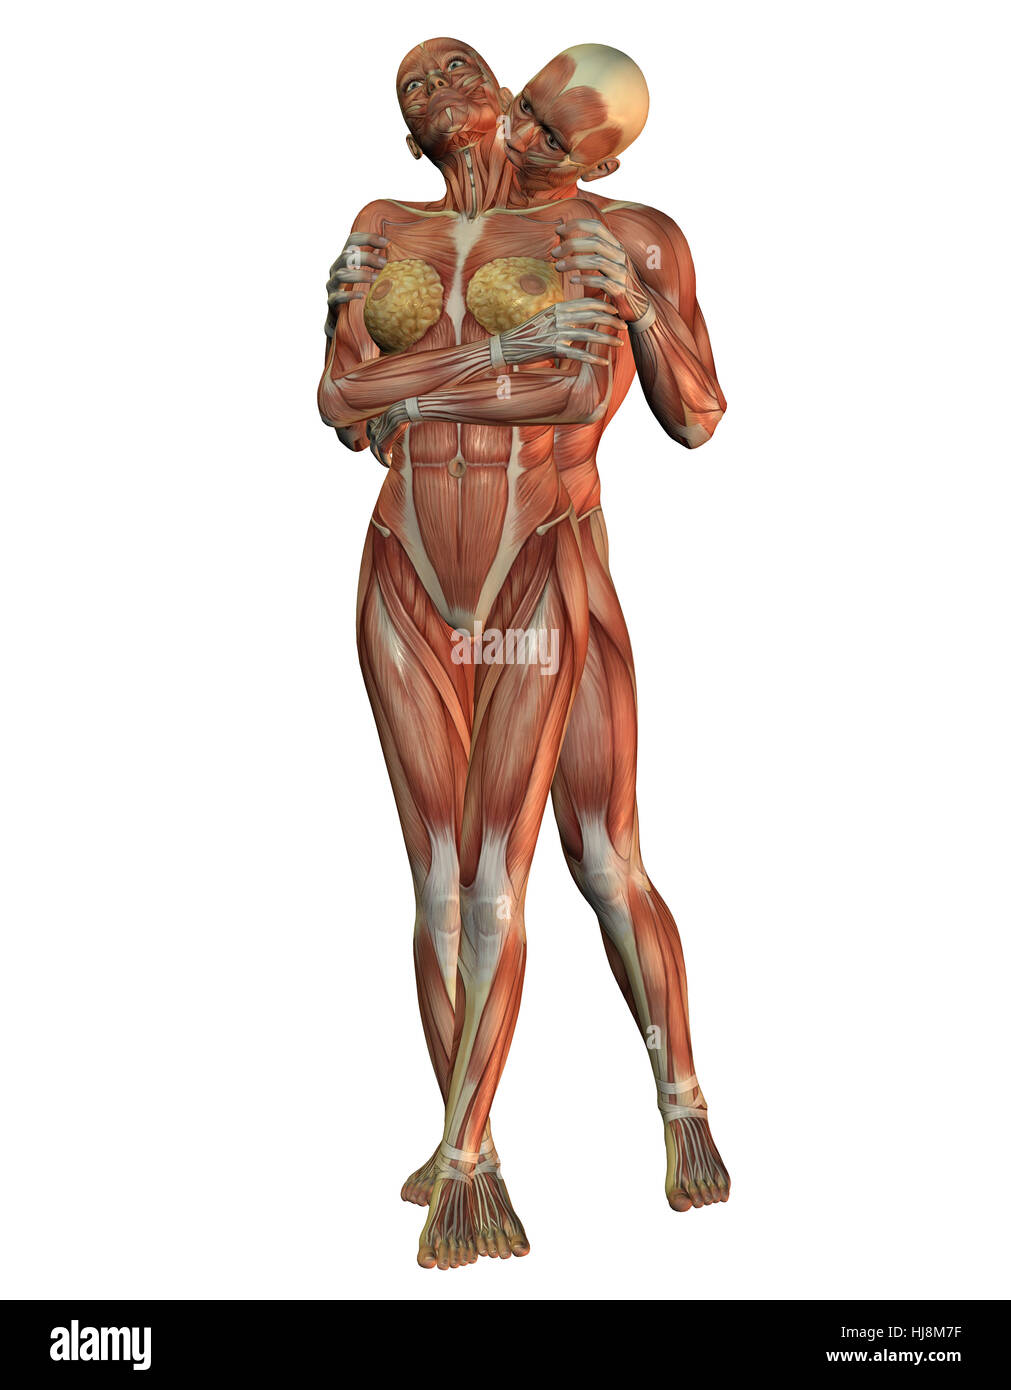 Human Muscle Illustration Cut Out Stock Images Pictures Alamy